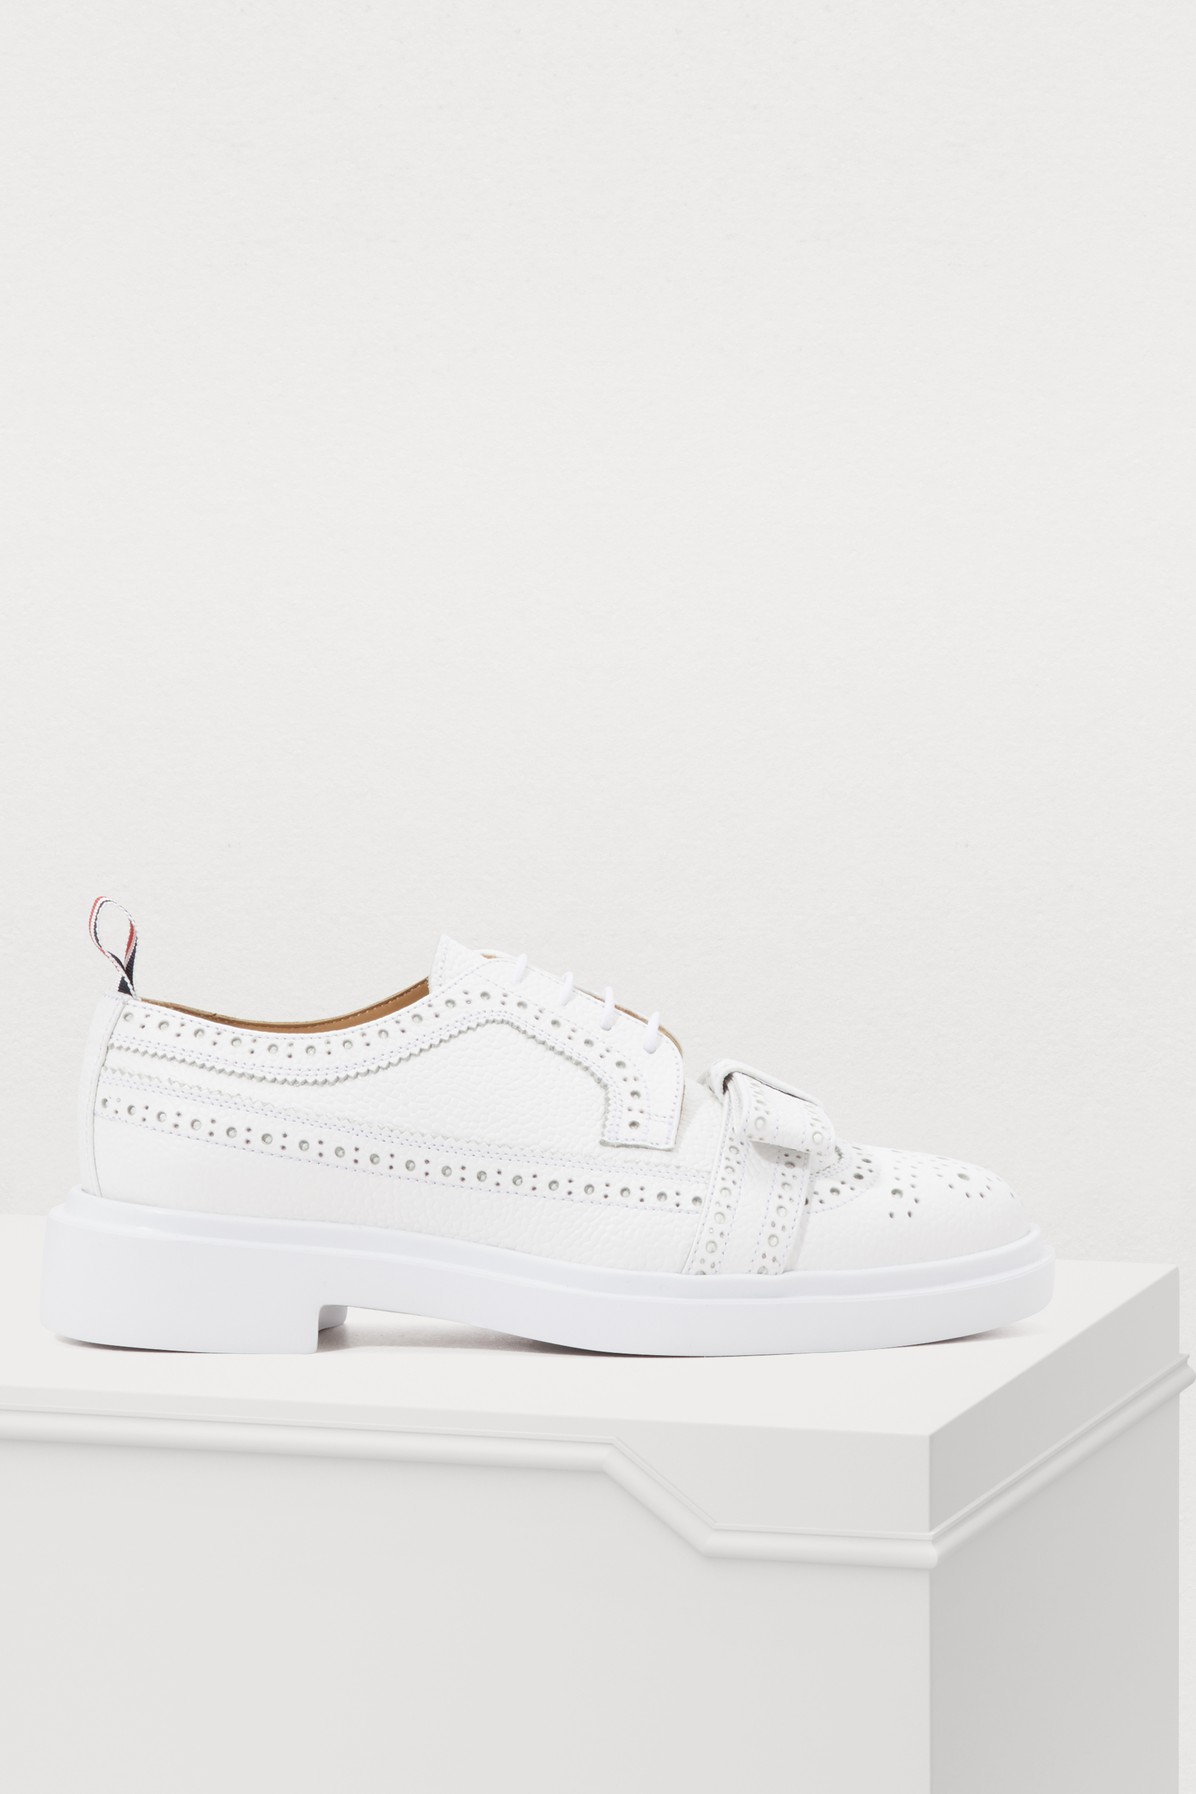 'Brogued Trainer' Leather Shoes in White from Glamest